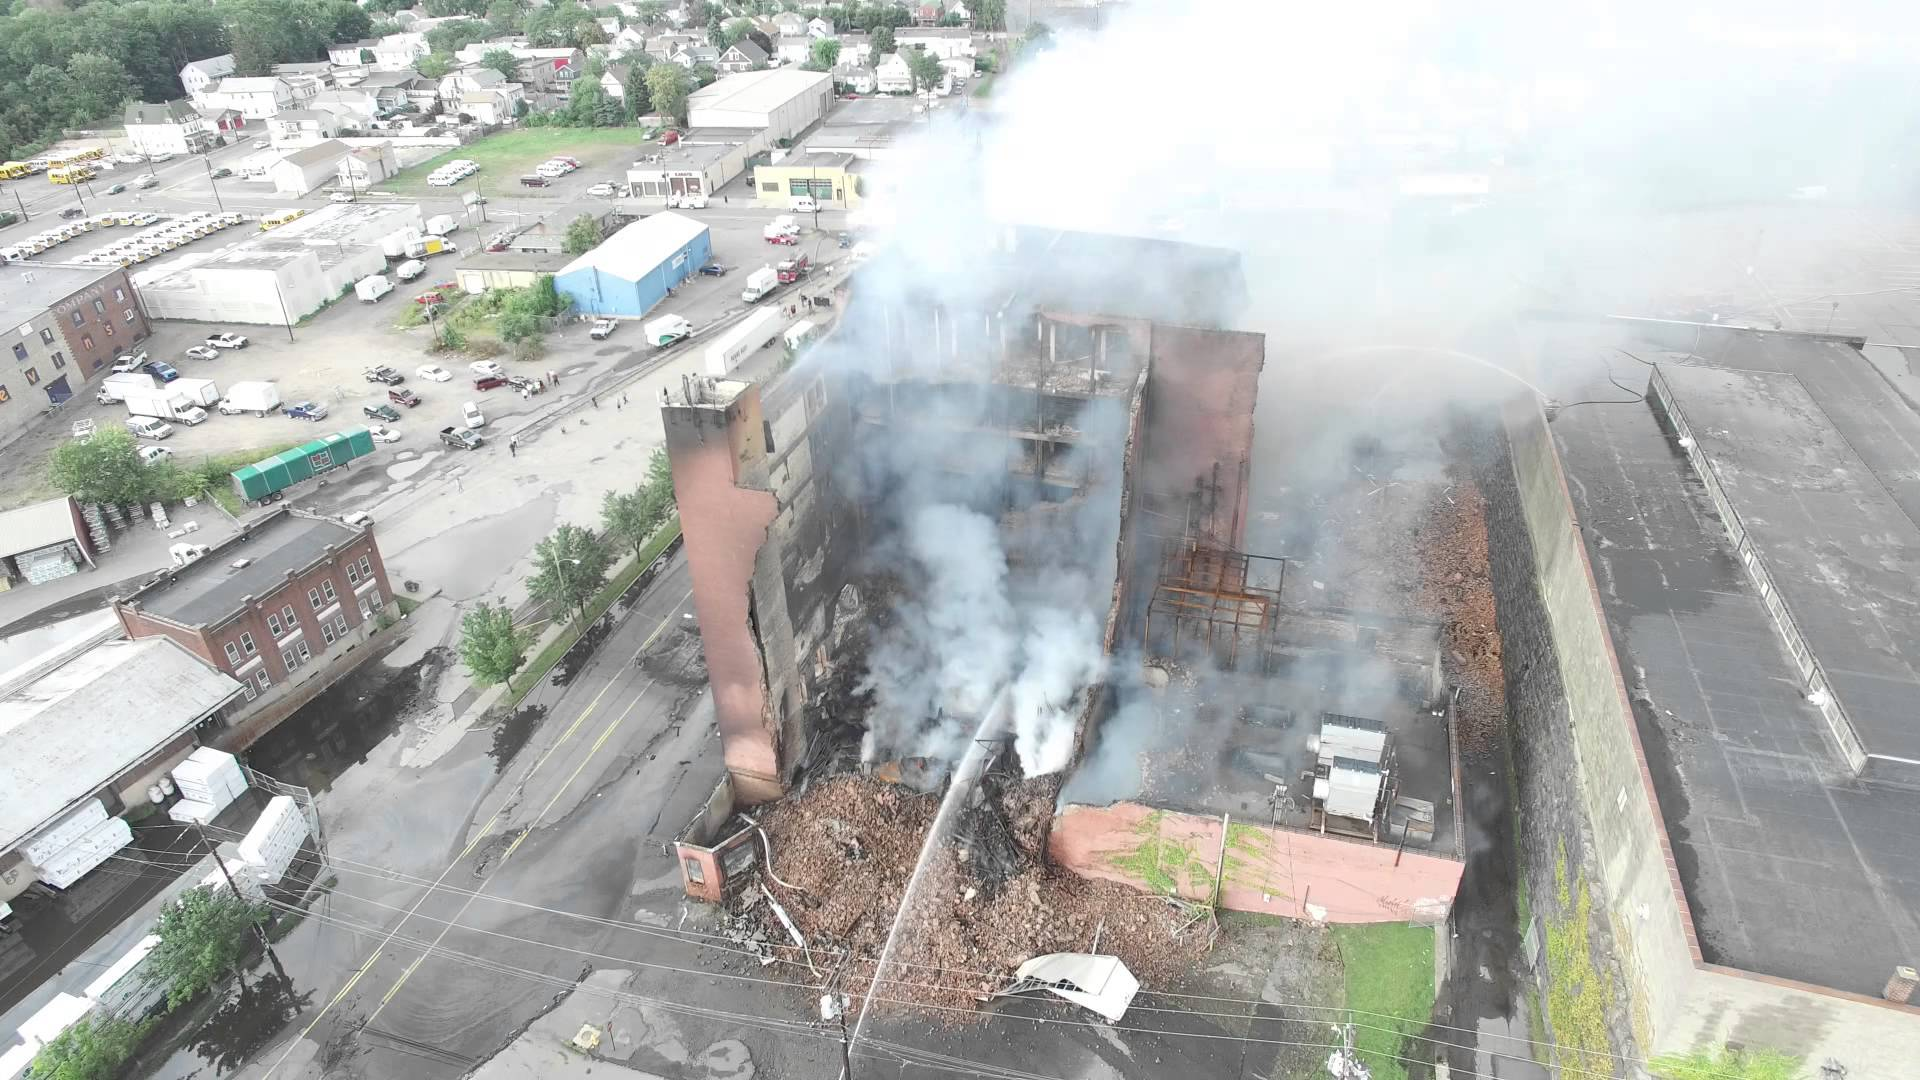 8/27/15 - 24 hours after Sandone Tire Warehouse Caught Fire in Scranton PA.